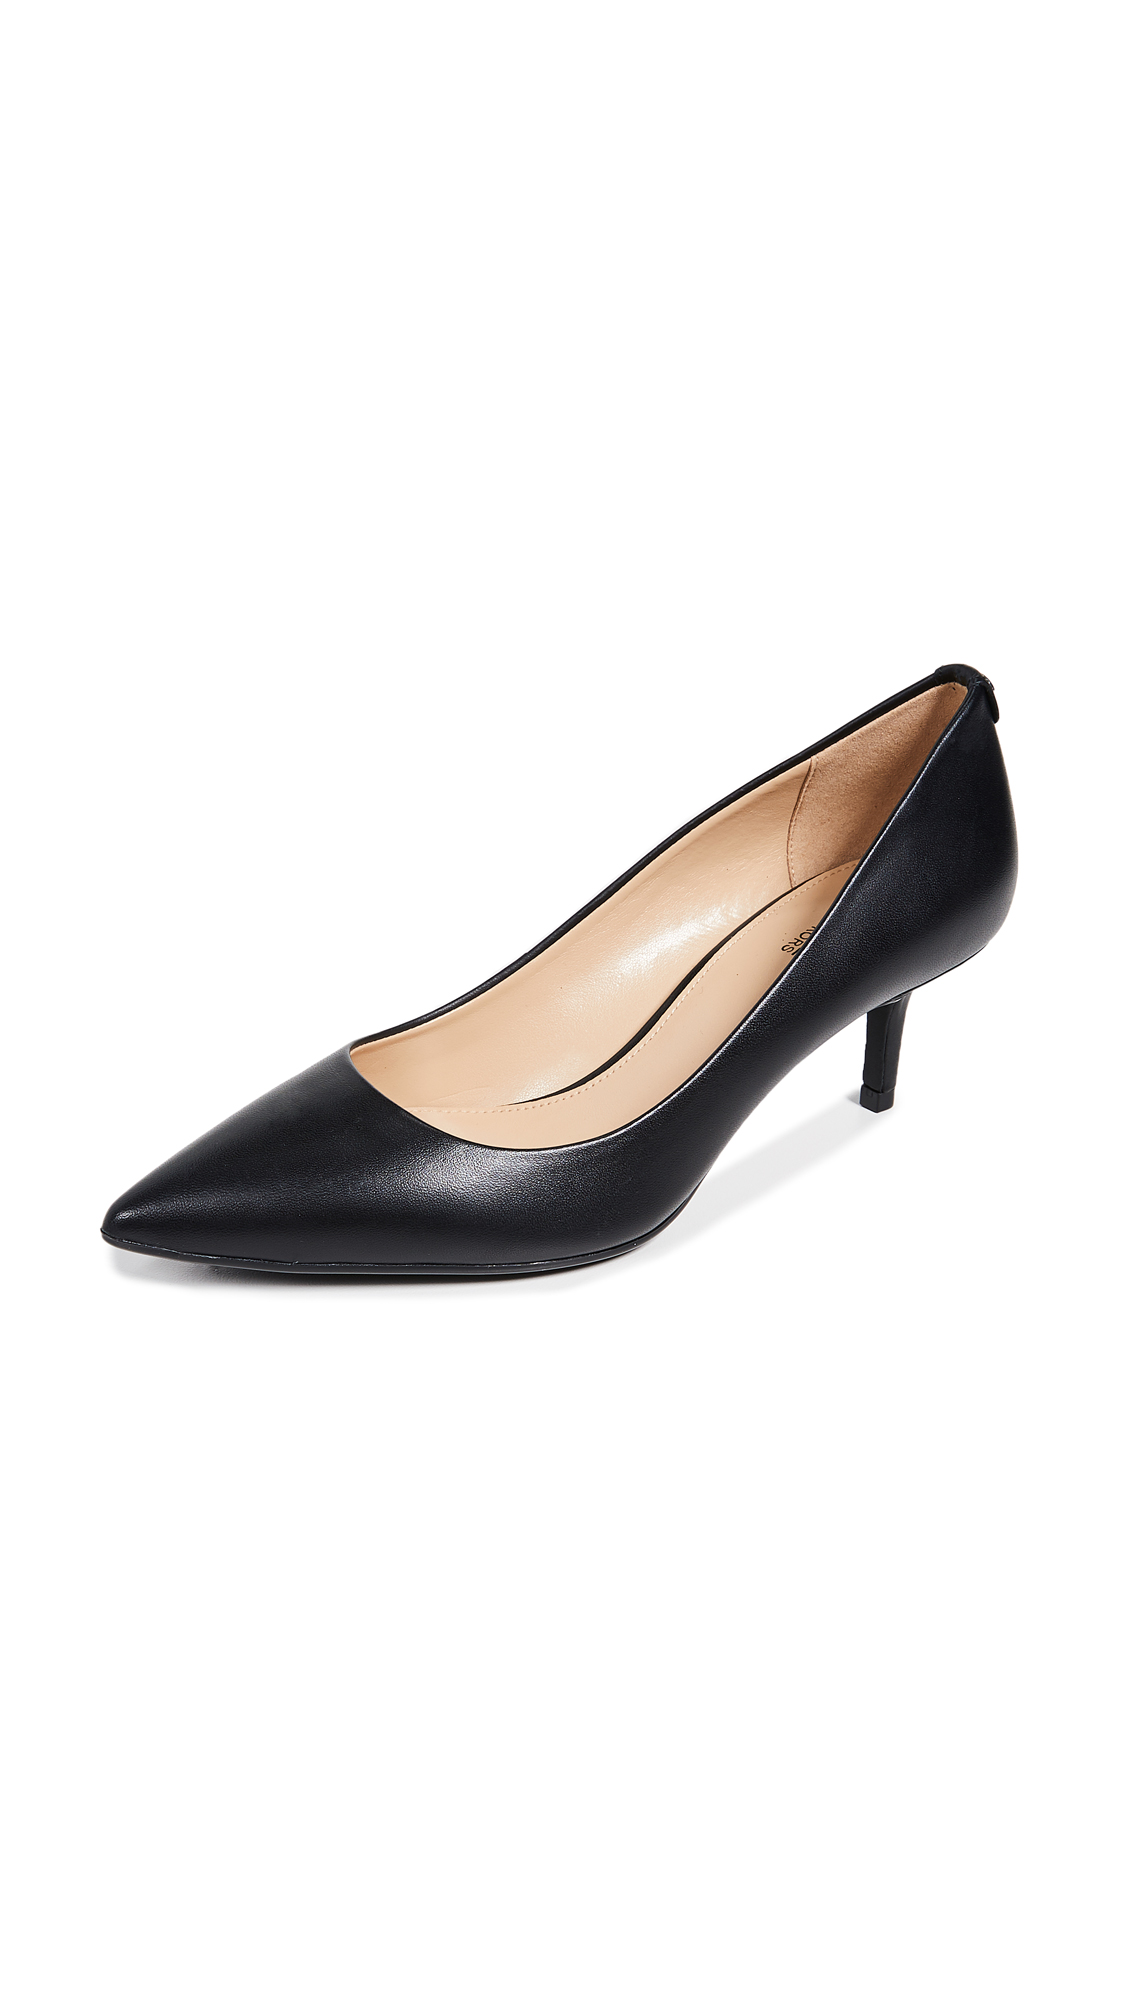 MICHAEL Michael Kors MK Flex Kitten Heel Pumps - Black